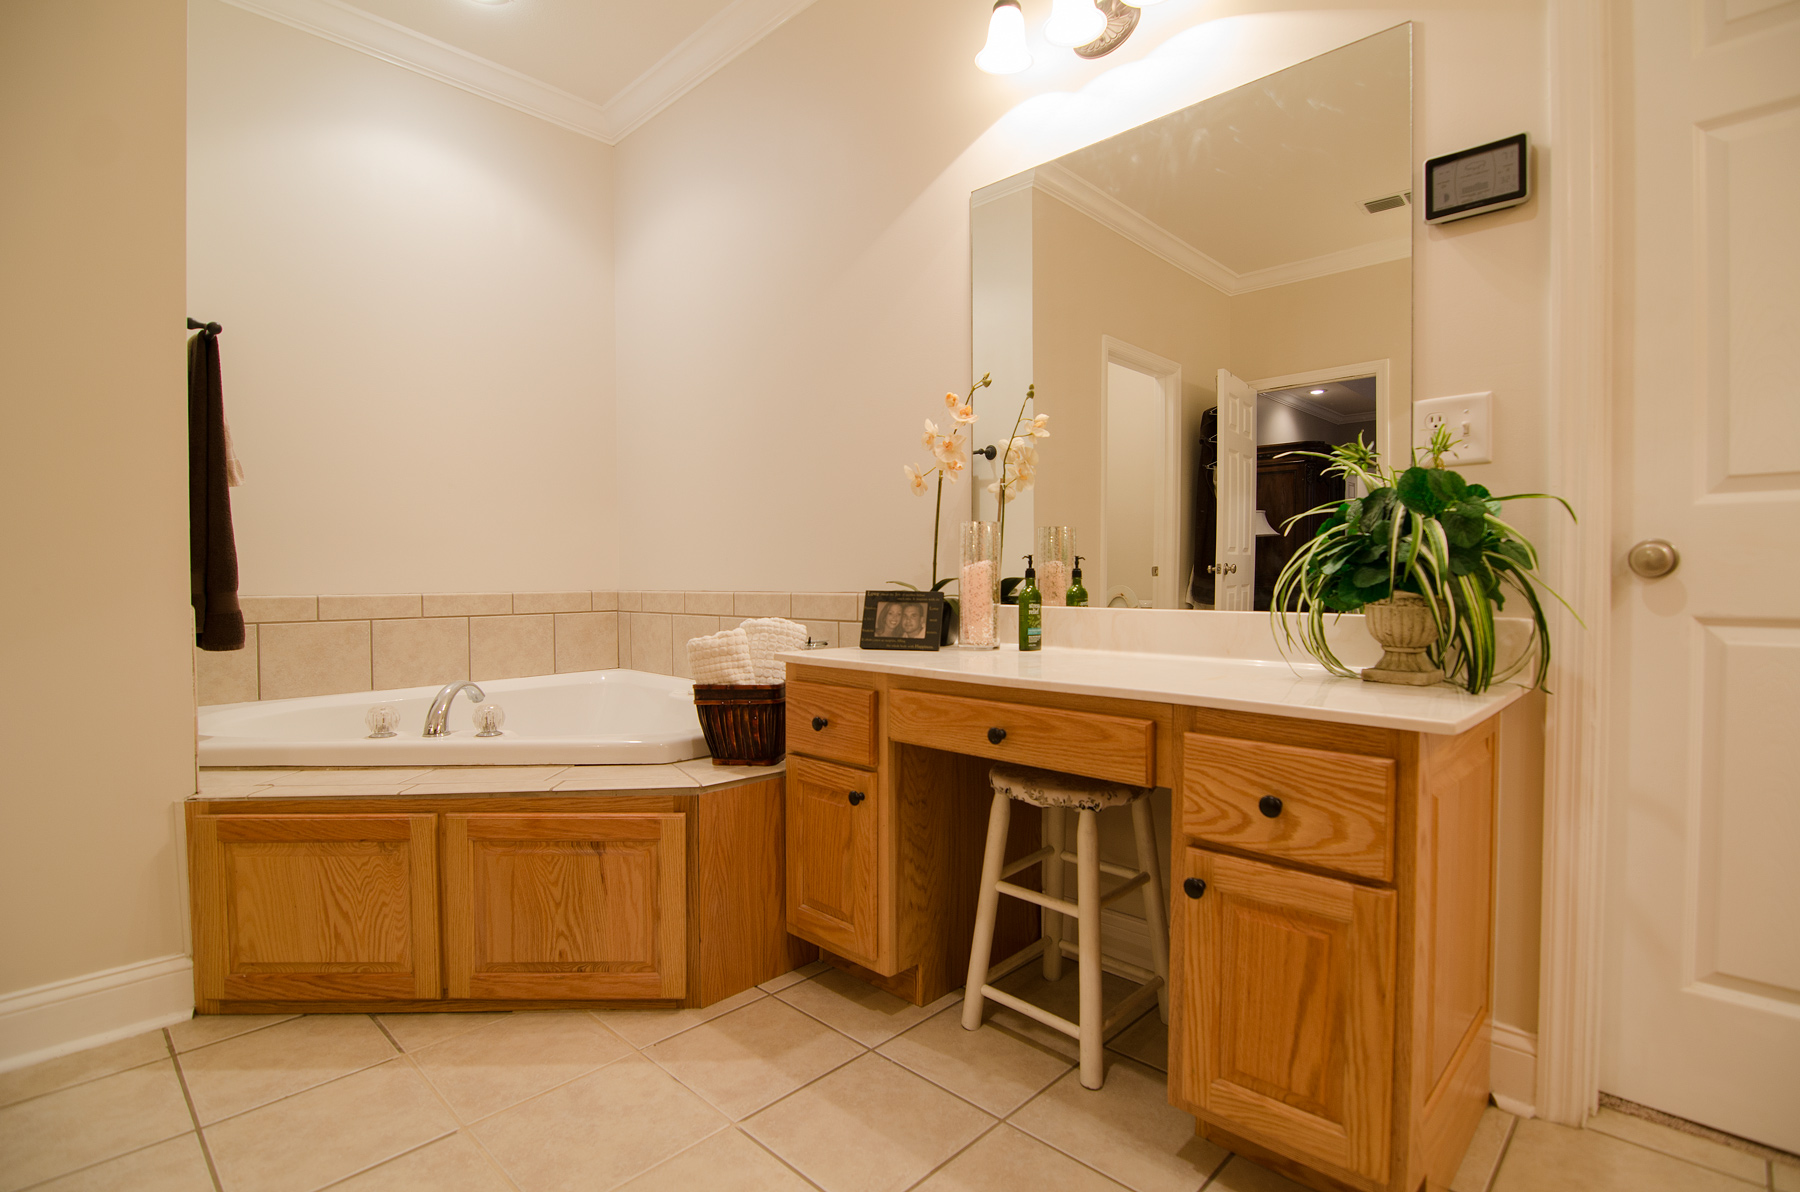 3riversrealty-masterbath2.jpg